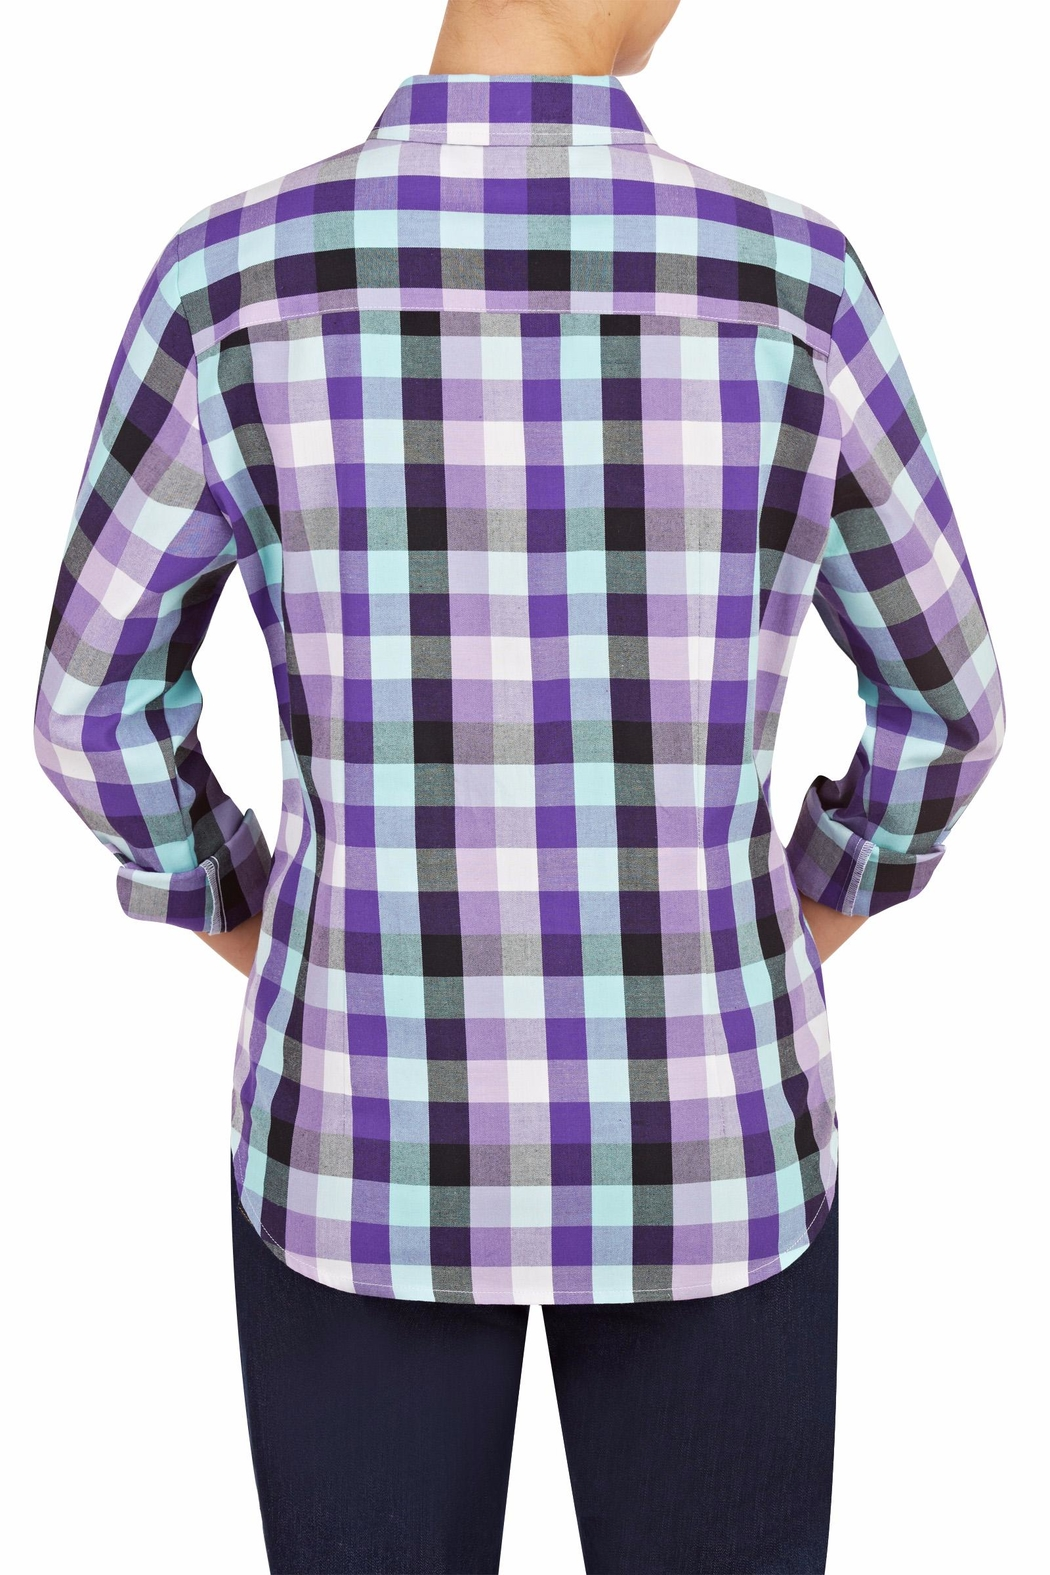 Allison Daley Purple Plaid Shirt - Side Cropped Image